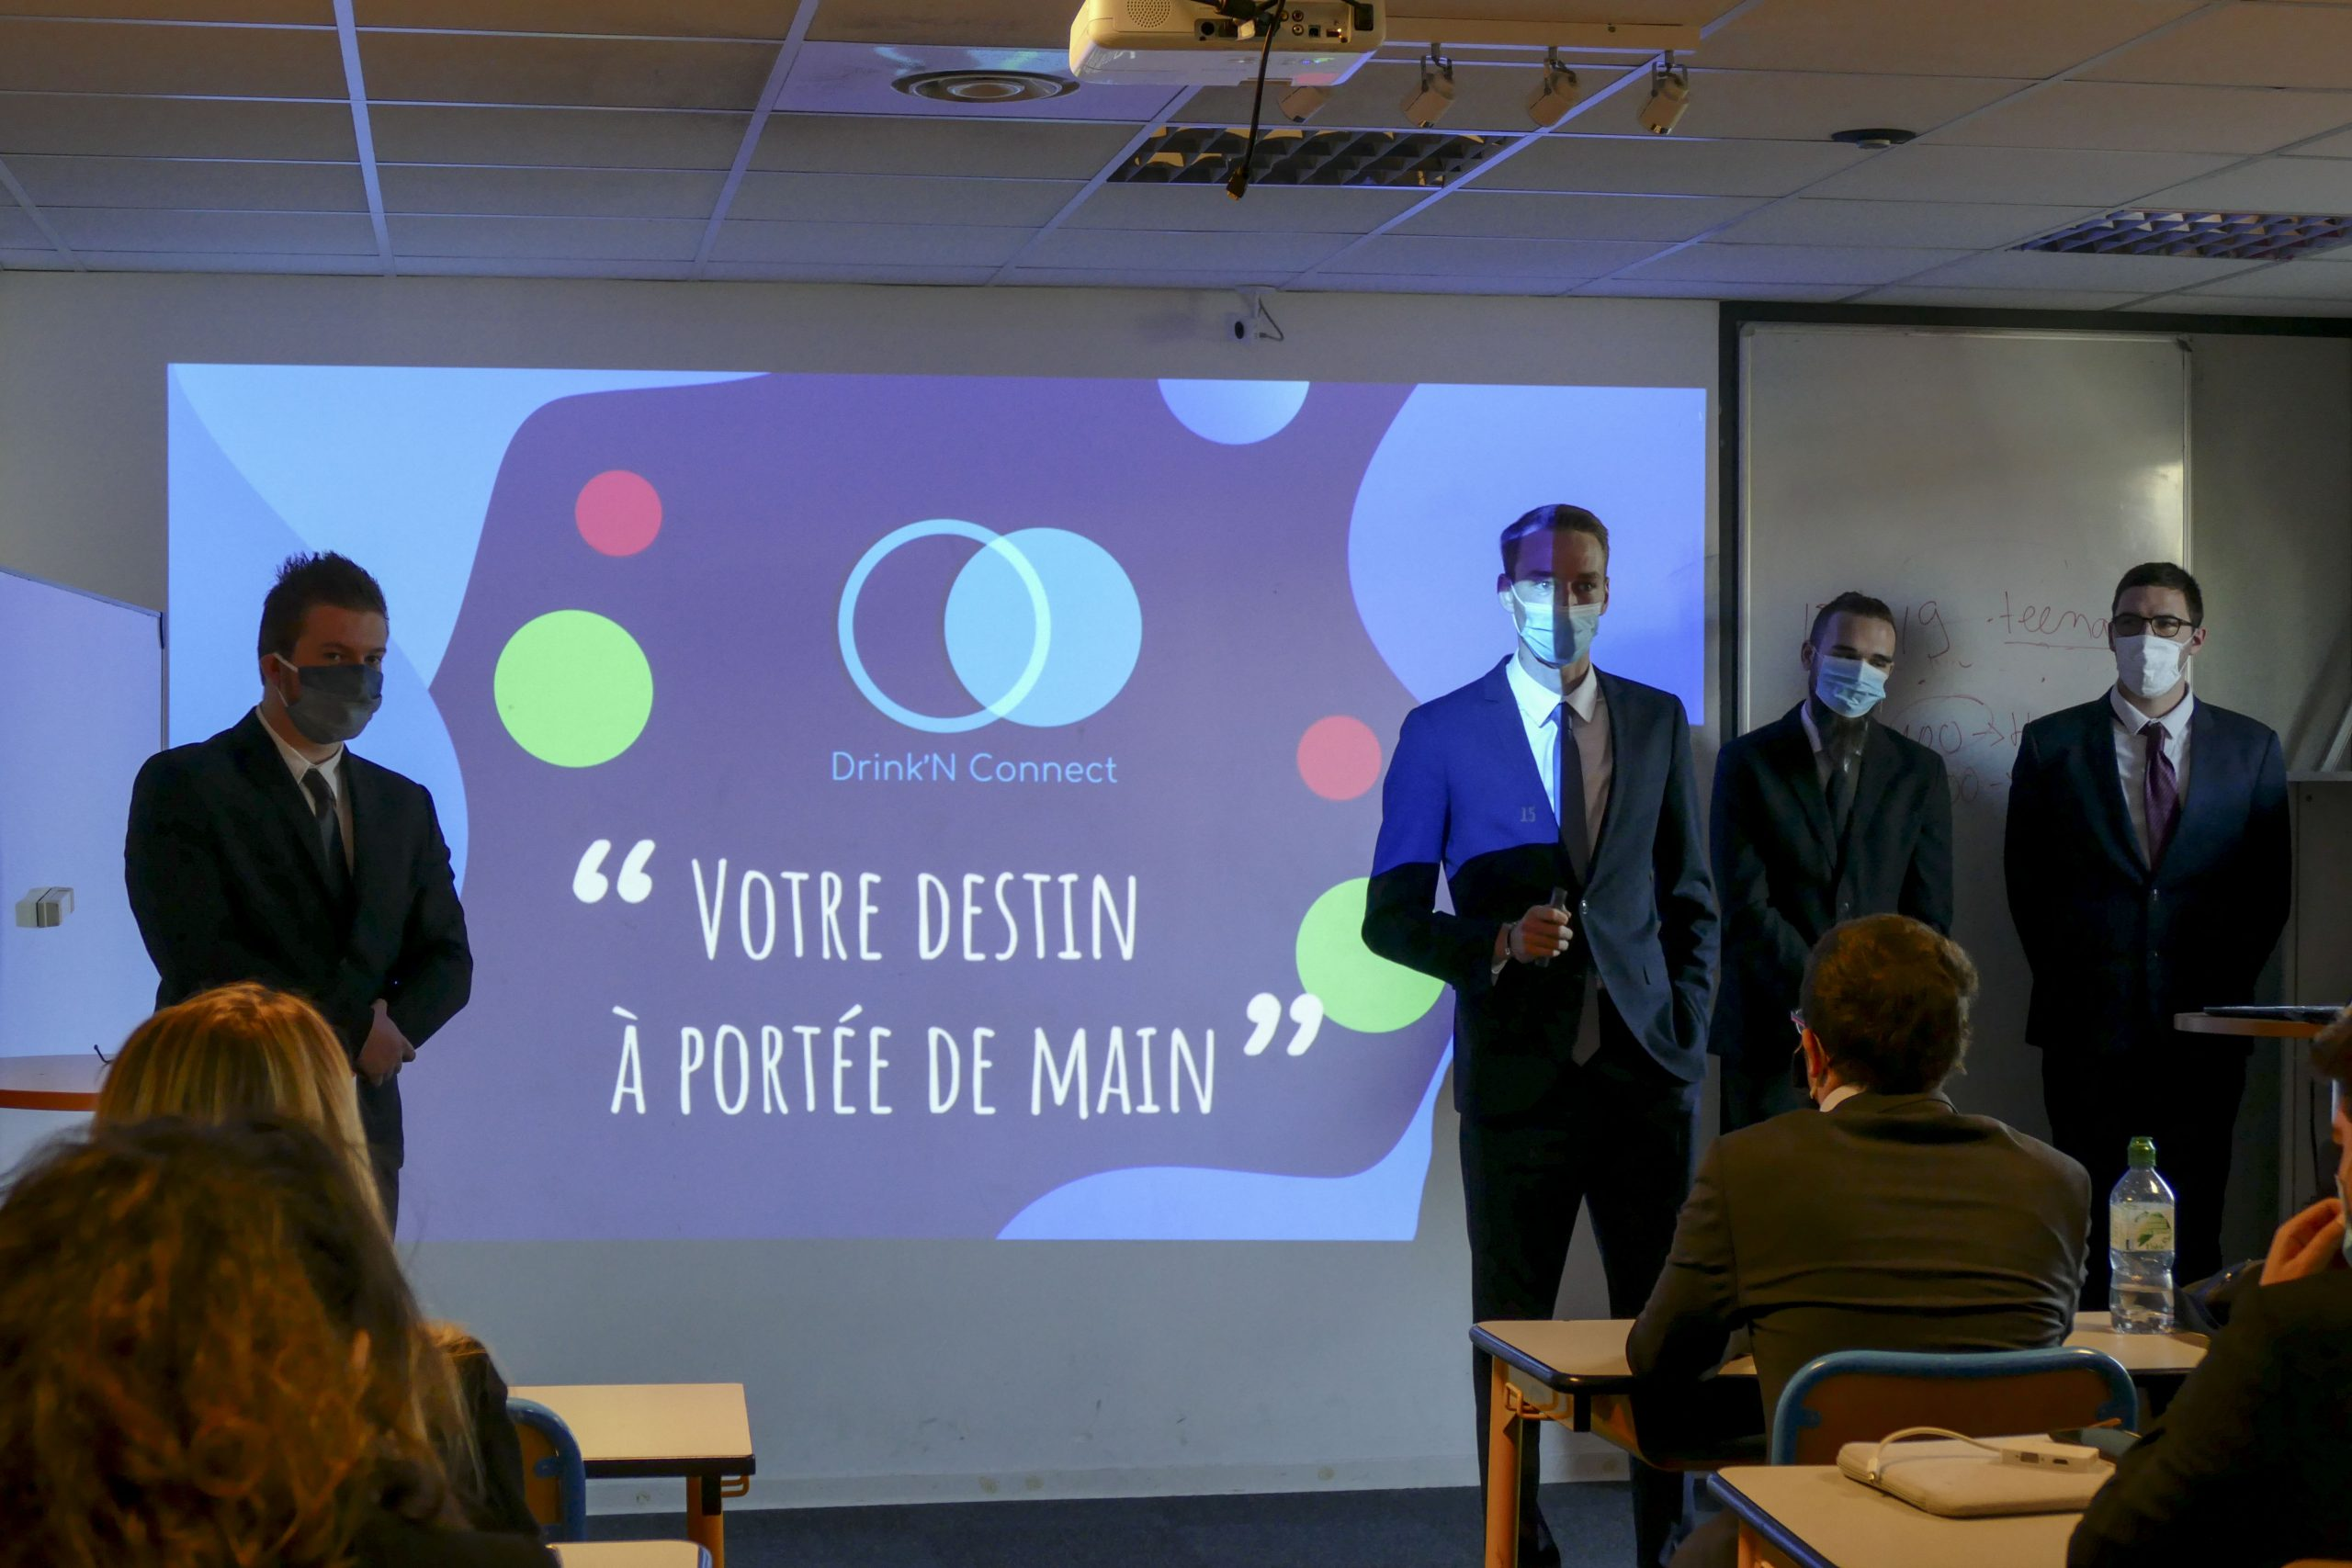 INSTITUT-G4-LANCEMENT-TECH GAME-2020-2021-Marseille